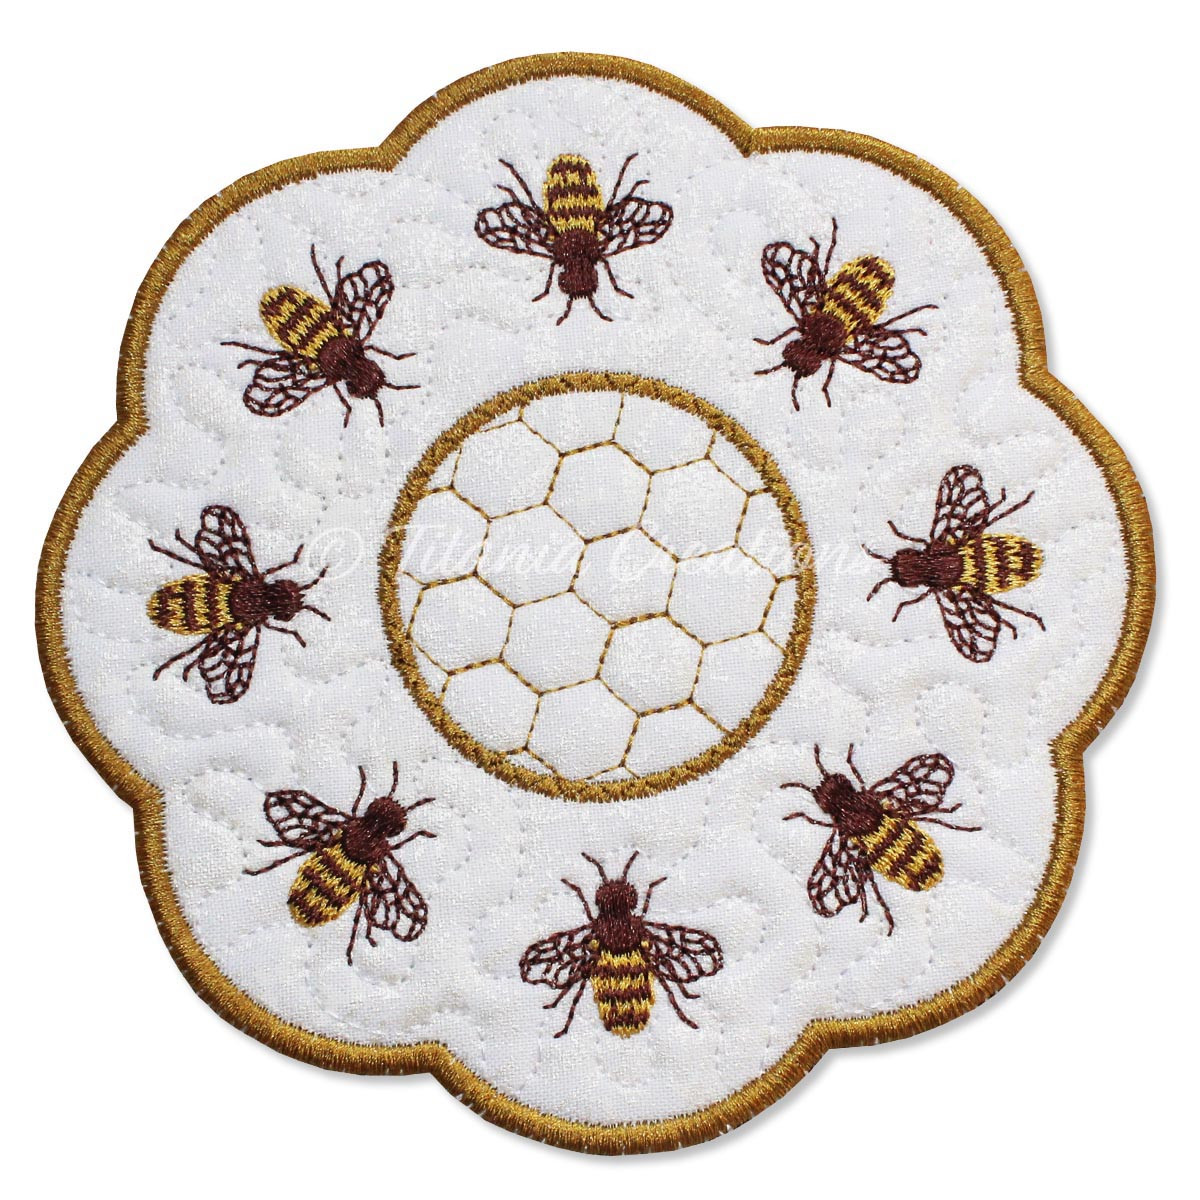 ITH Honey Bee Candle Mat 5x5 6x6 7x7 8x8